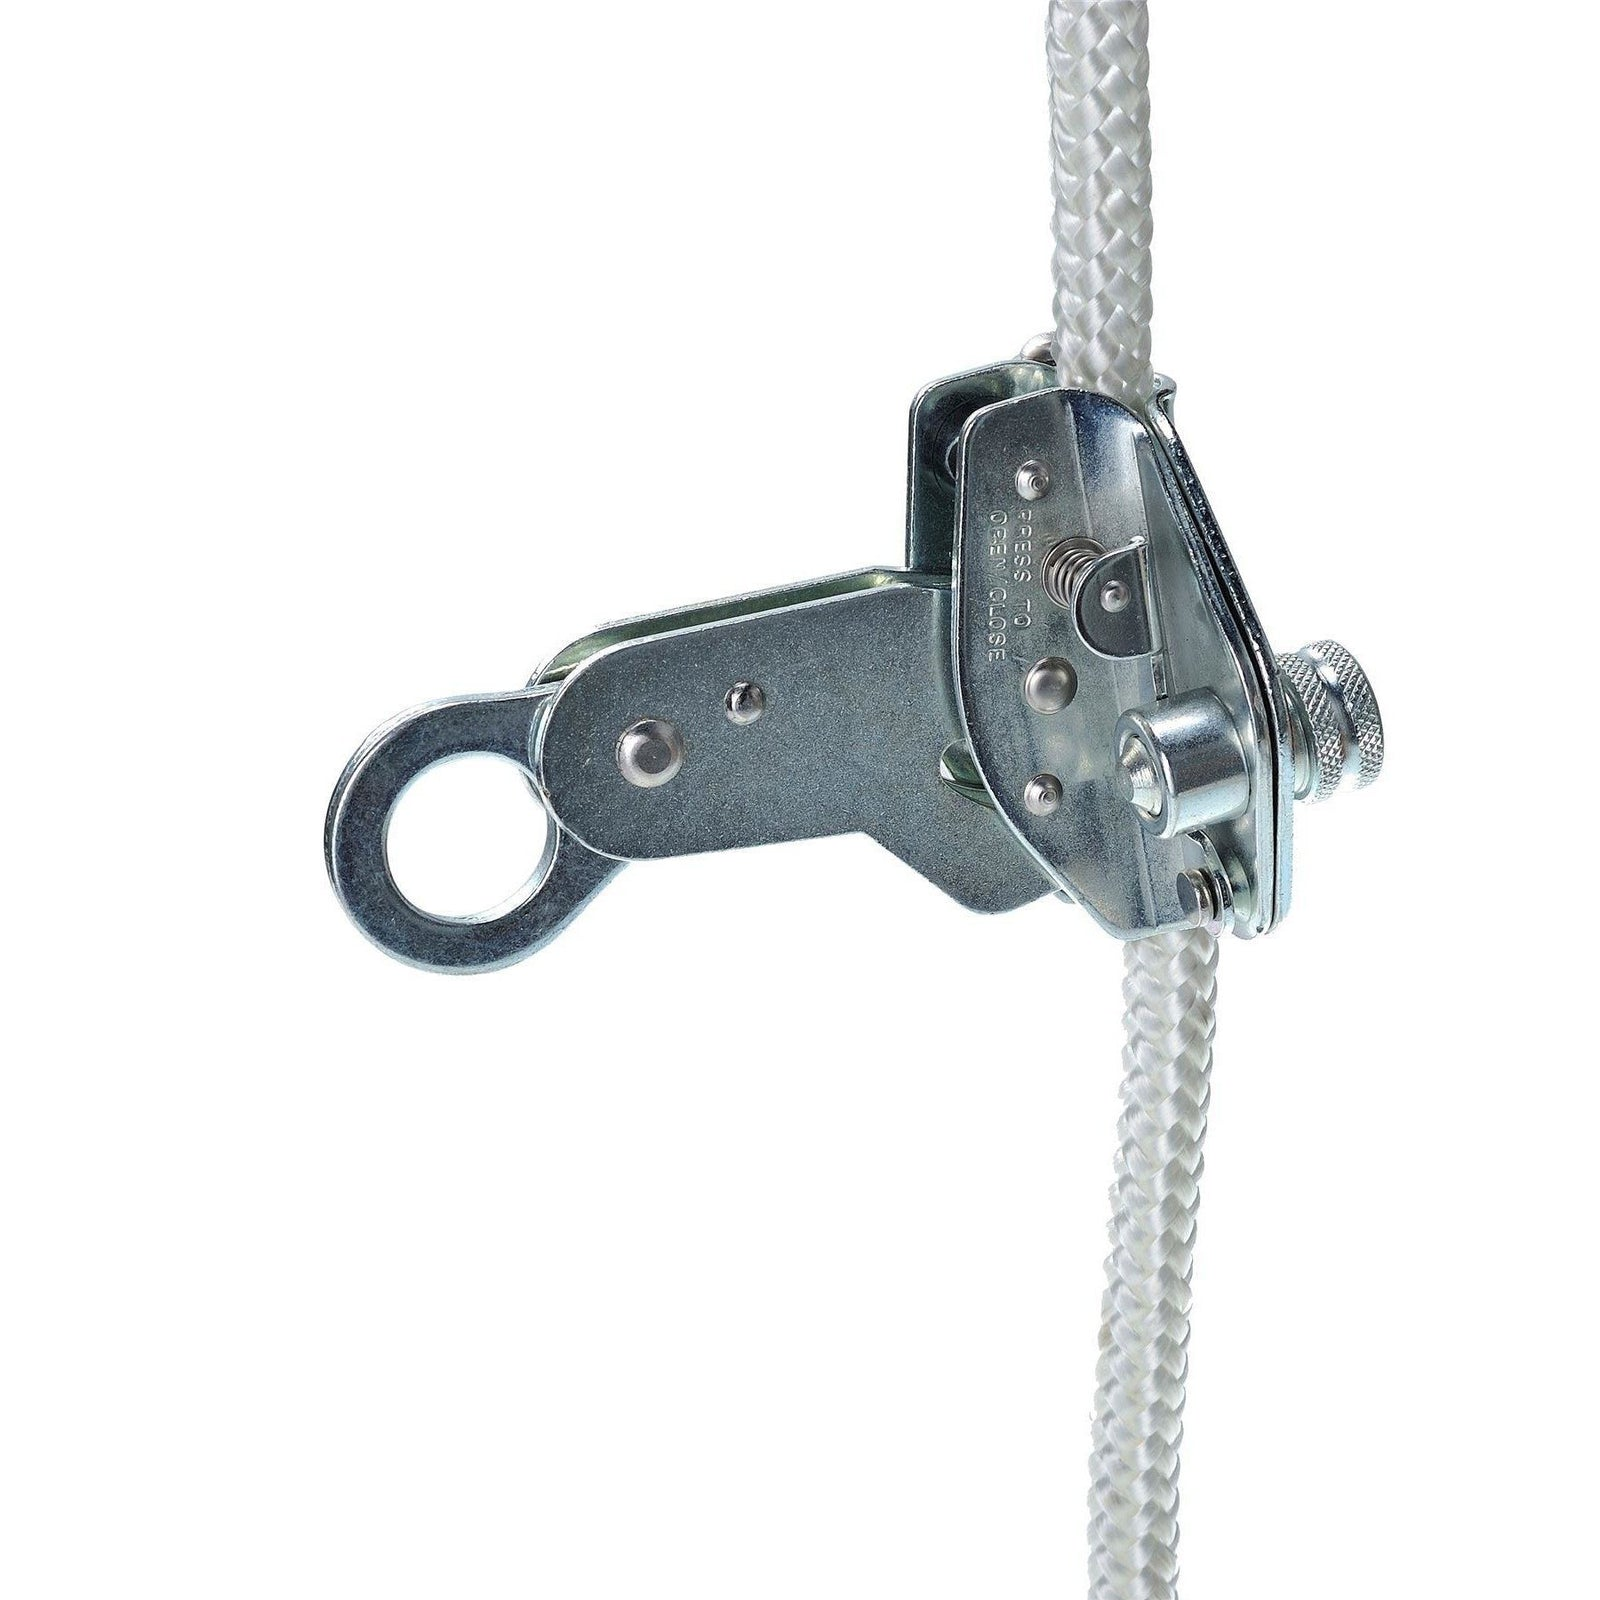 Portwest 12mm Detachable Rope Grab Silver One Size  FP36 - reid outdoors